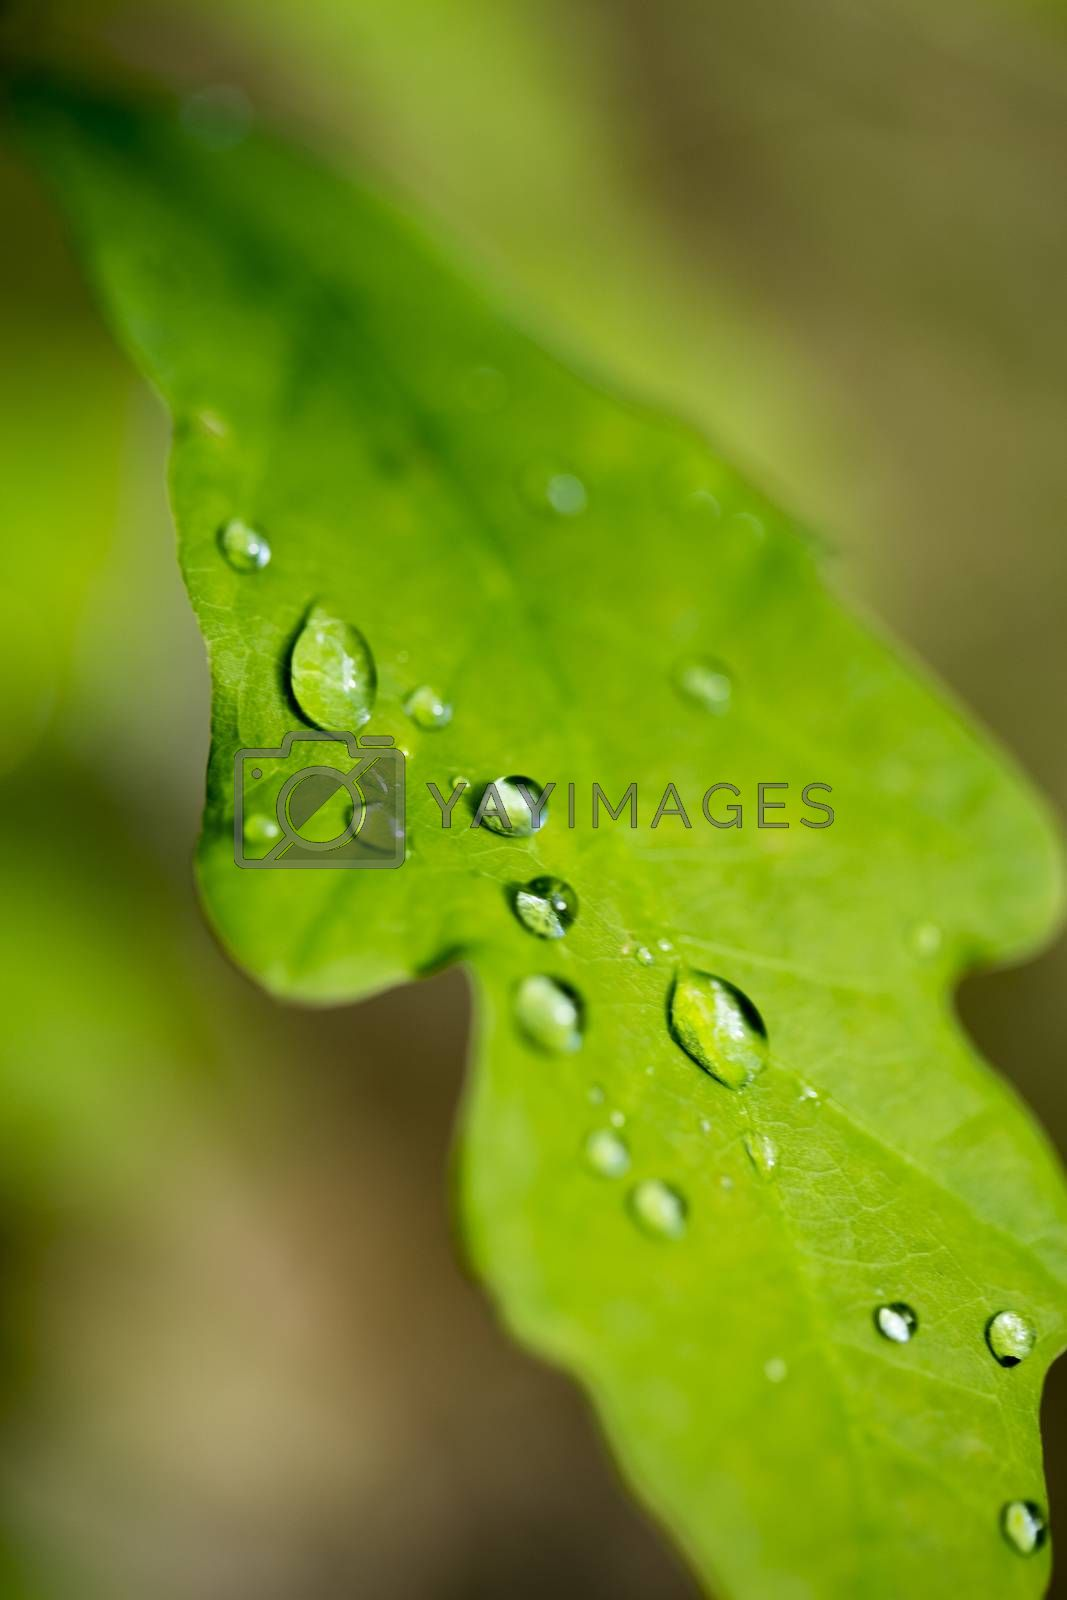 Rain drops on cercus leaf macro background fine art in high quality prints products fifty megapixels by BakalaeroZz Photography